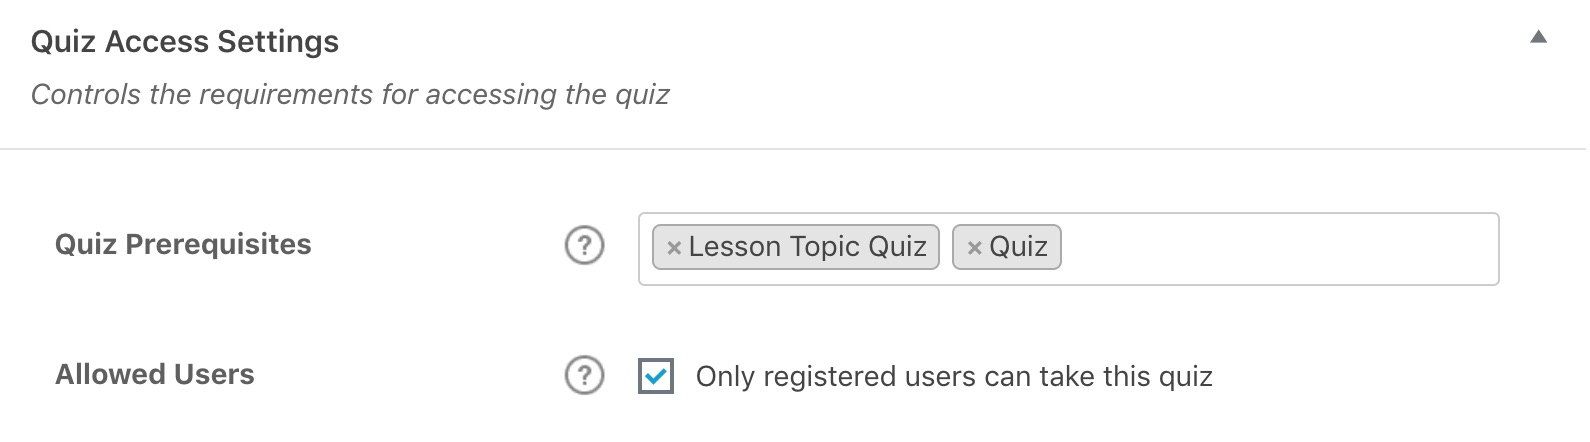 LearnDash quiz access settings in admin